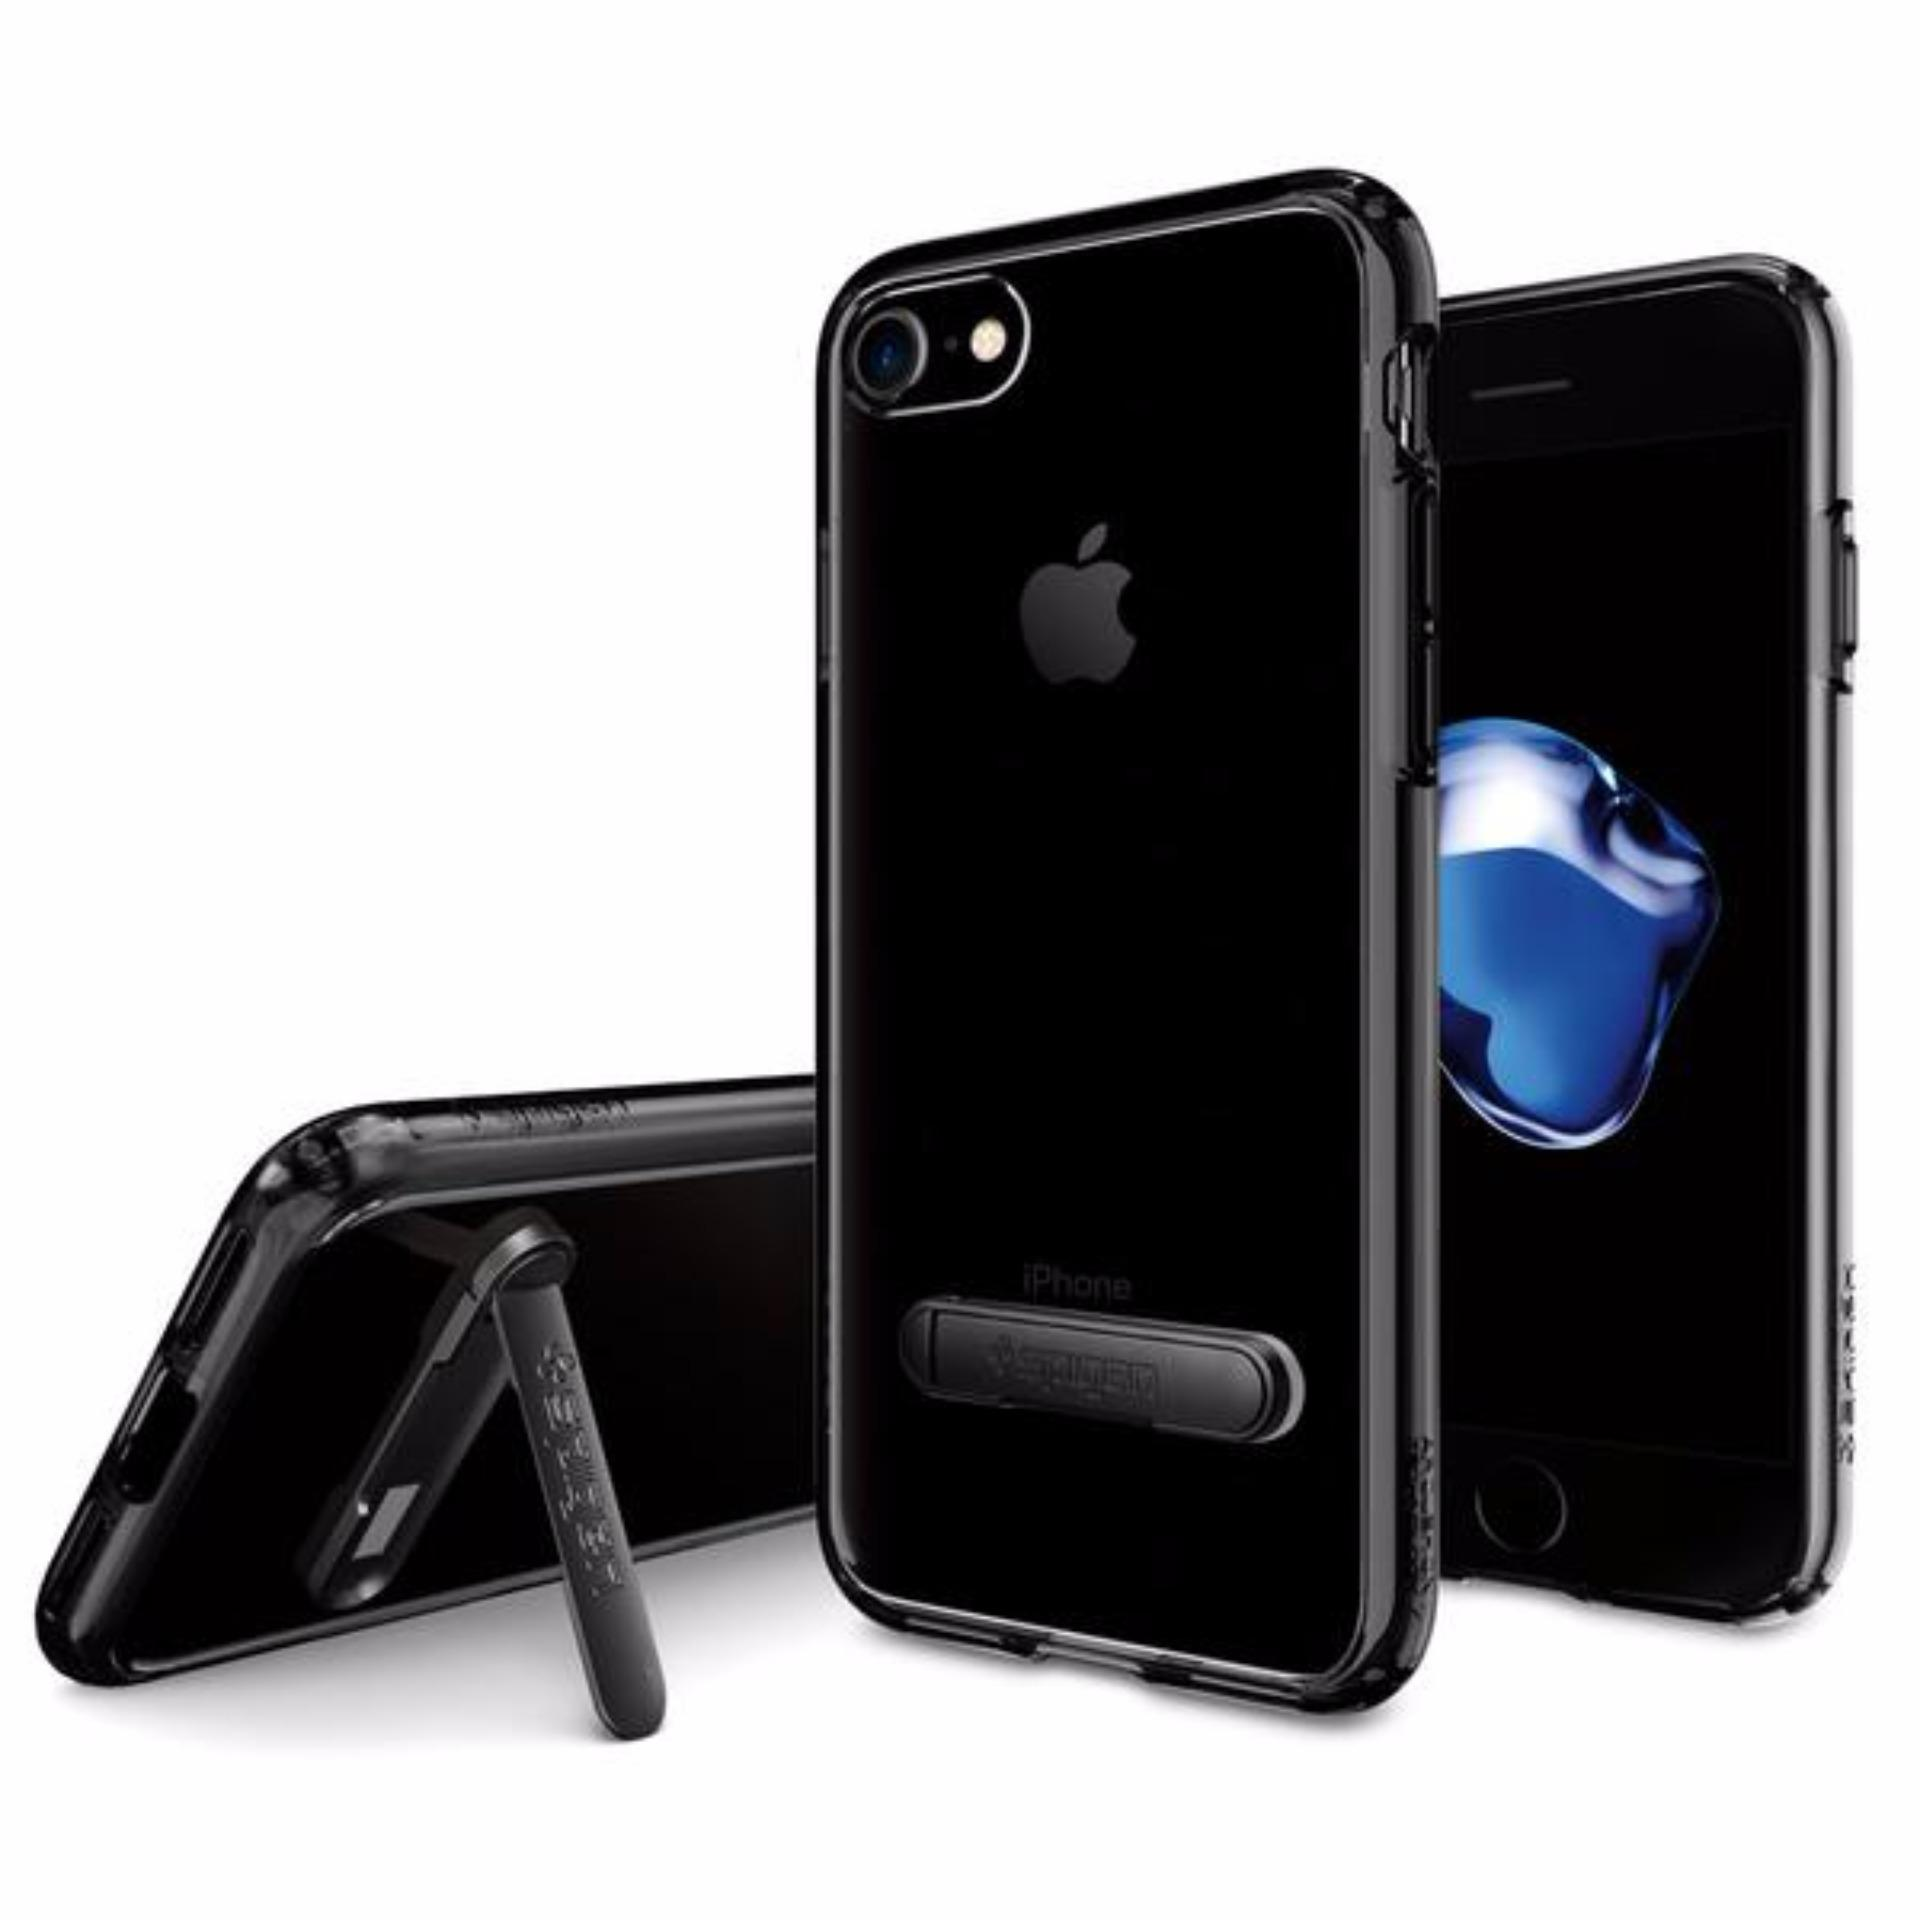 ... Spigen iPhone 7 Plus Case Ultra Hybrid S Jet Black ...